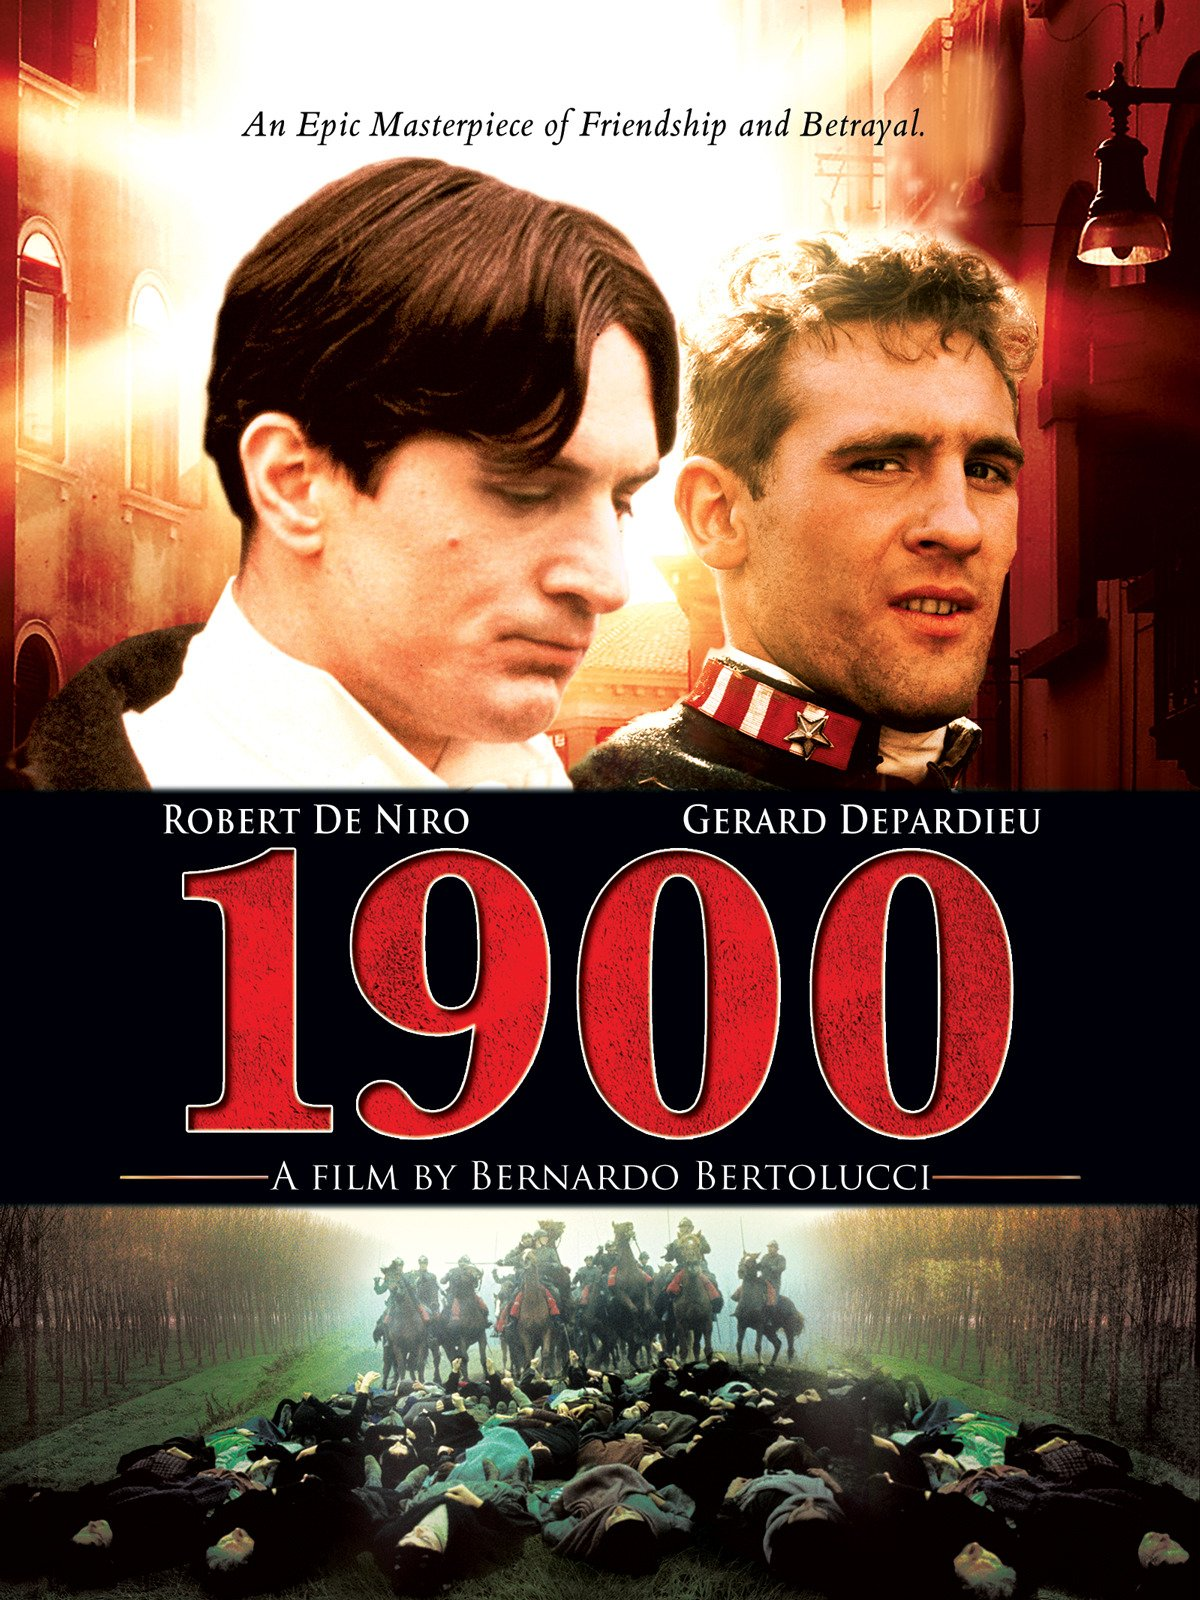 Watch 1900 (Extended Edition) | Prime Video